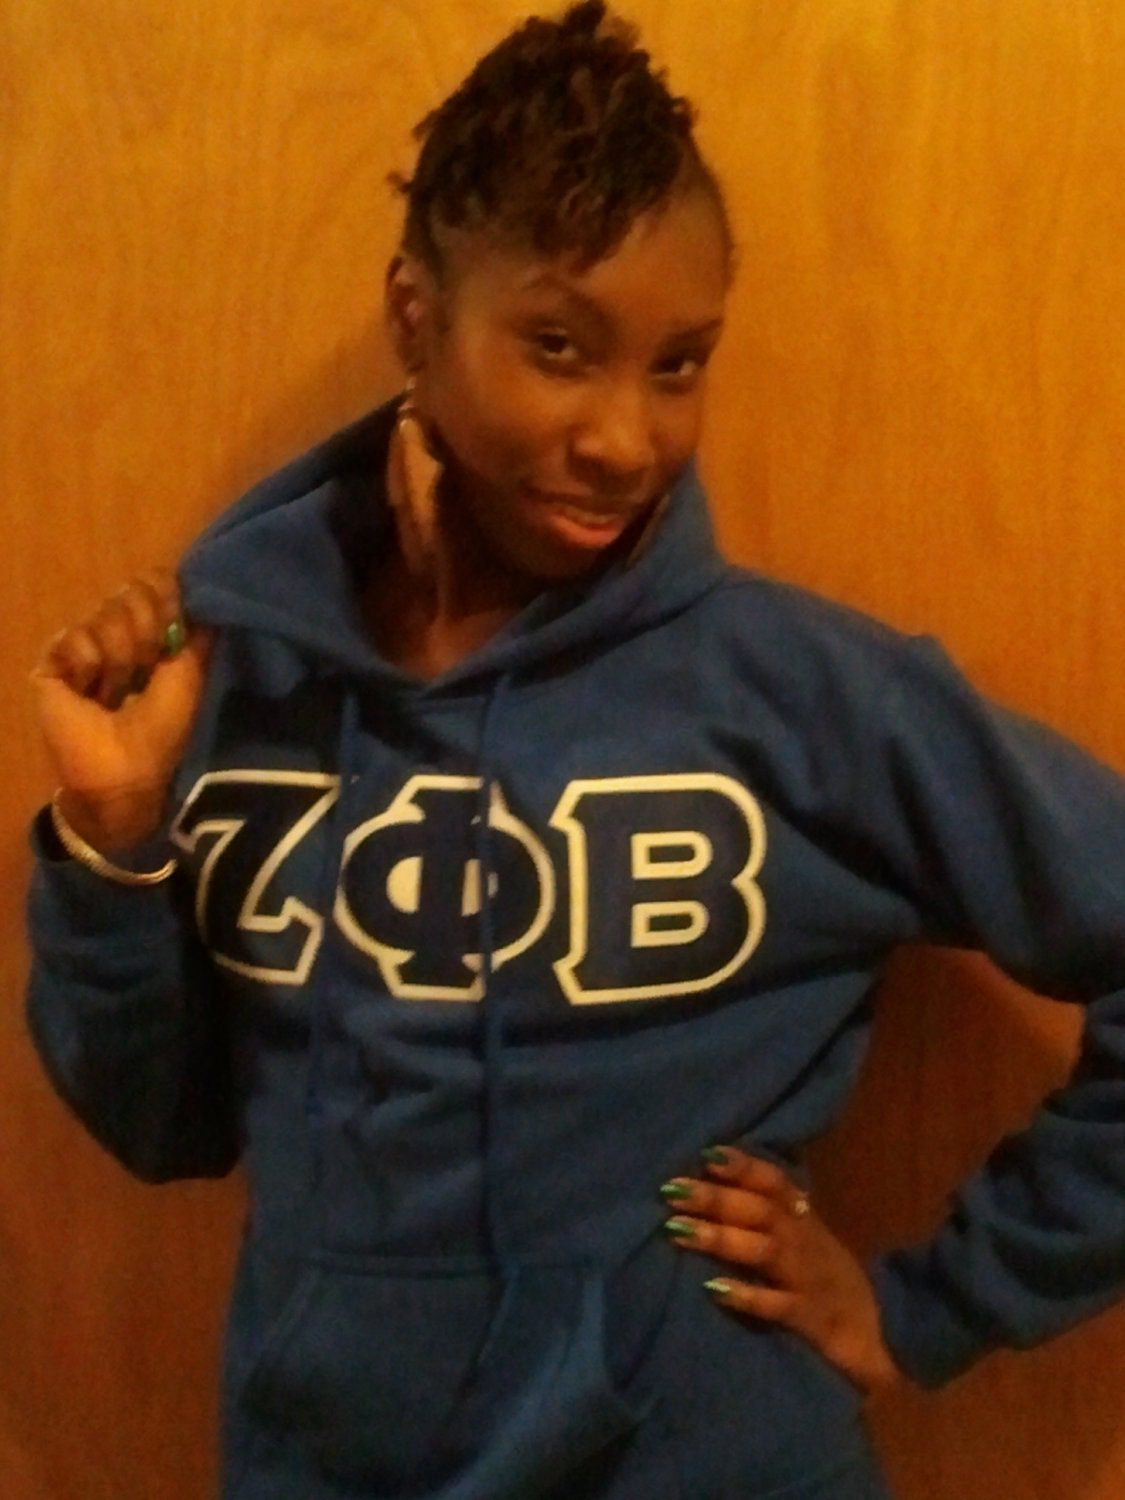 sorority fraternity hoodie greek letter sweatshirts With fraternity letters sweatshirts